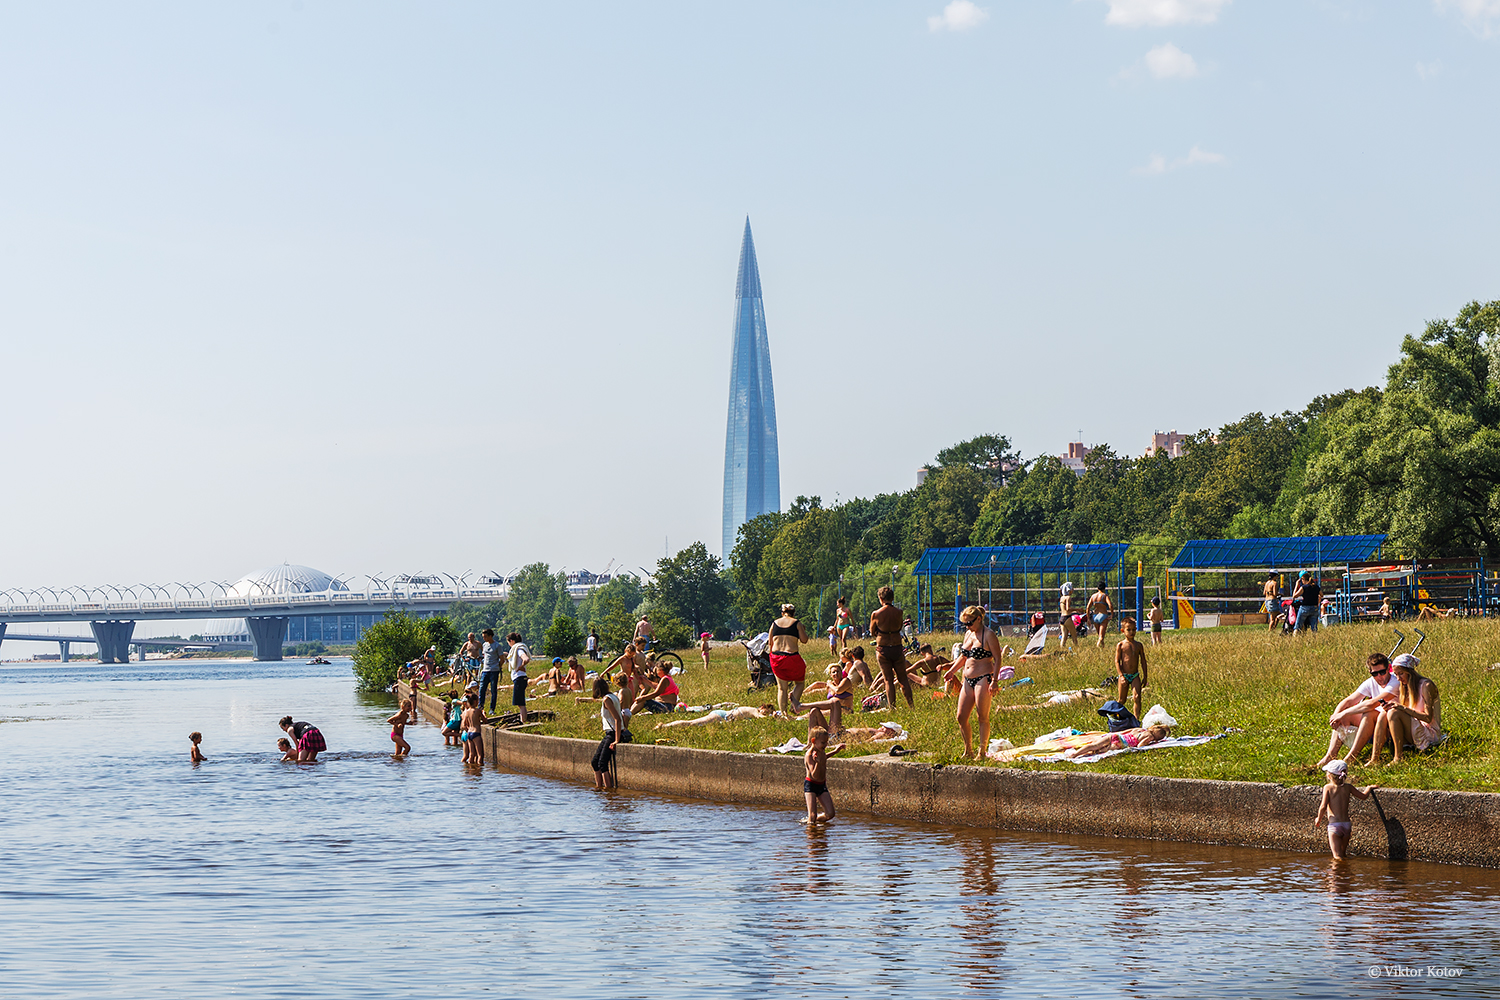 yelagin-island-bathers-lakhta-center